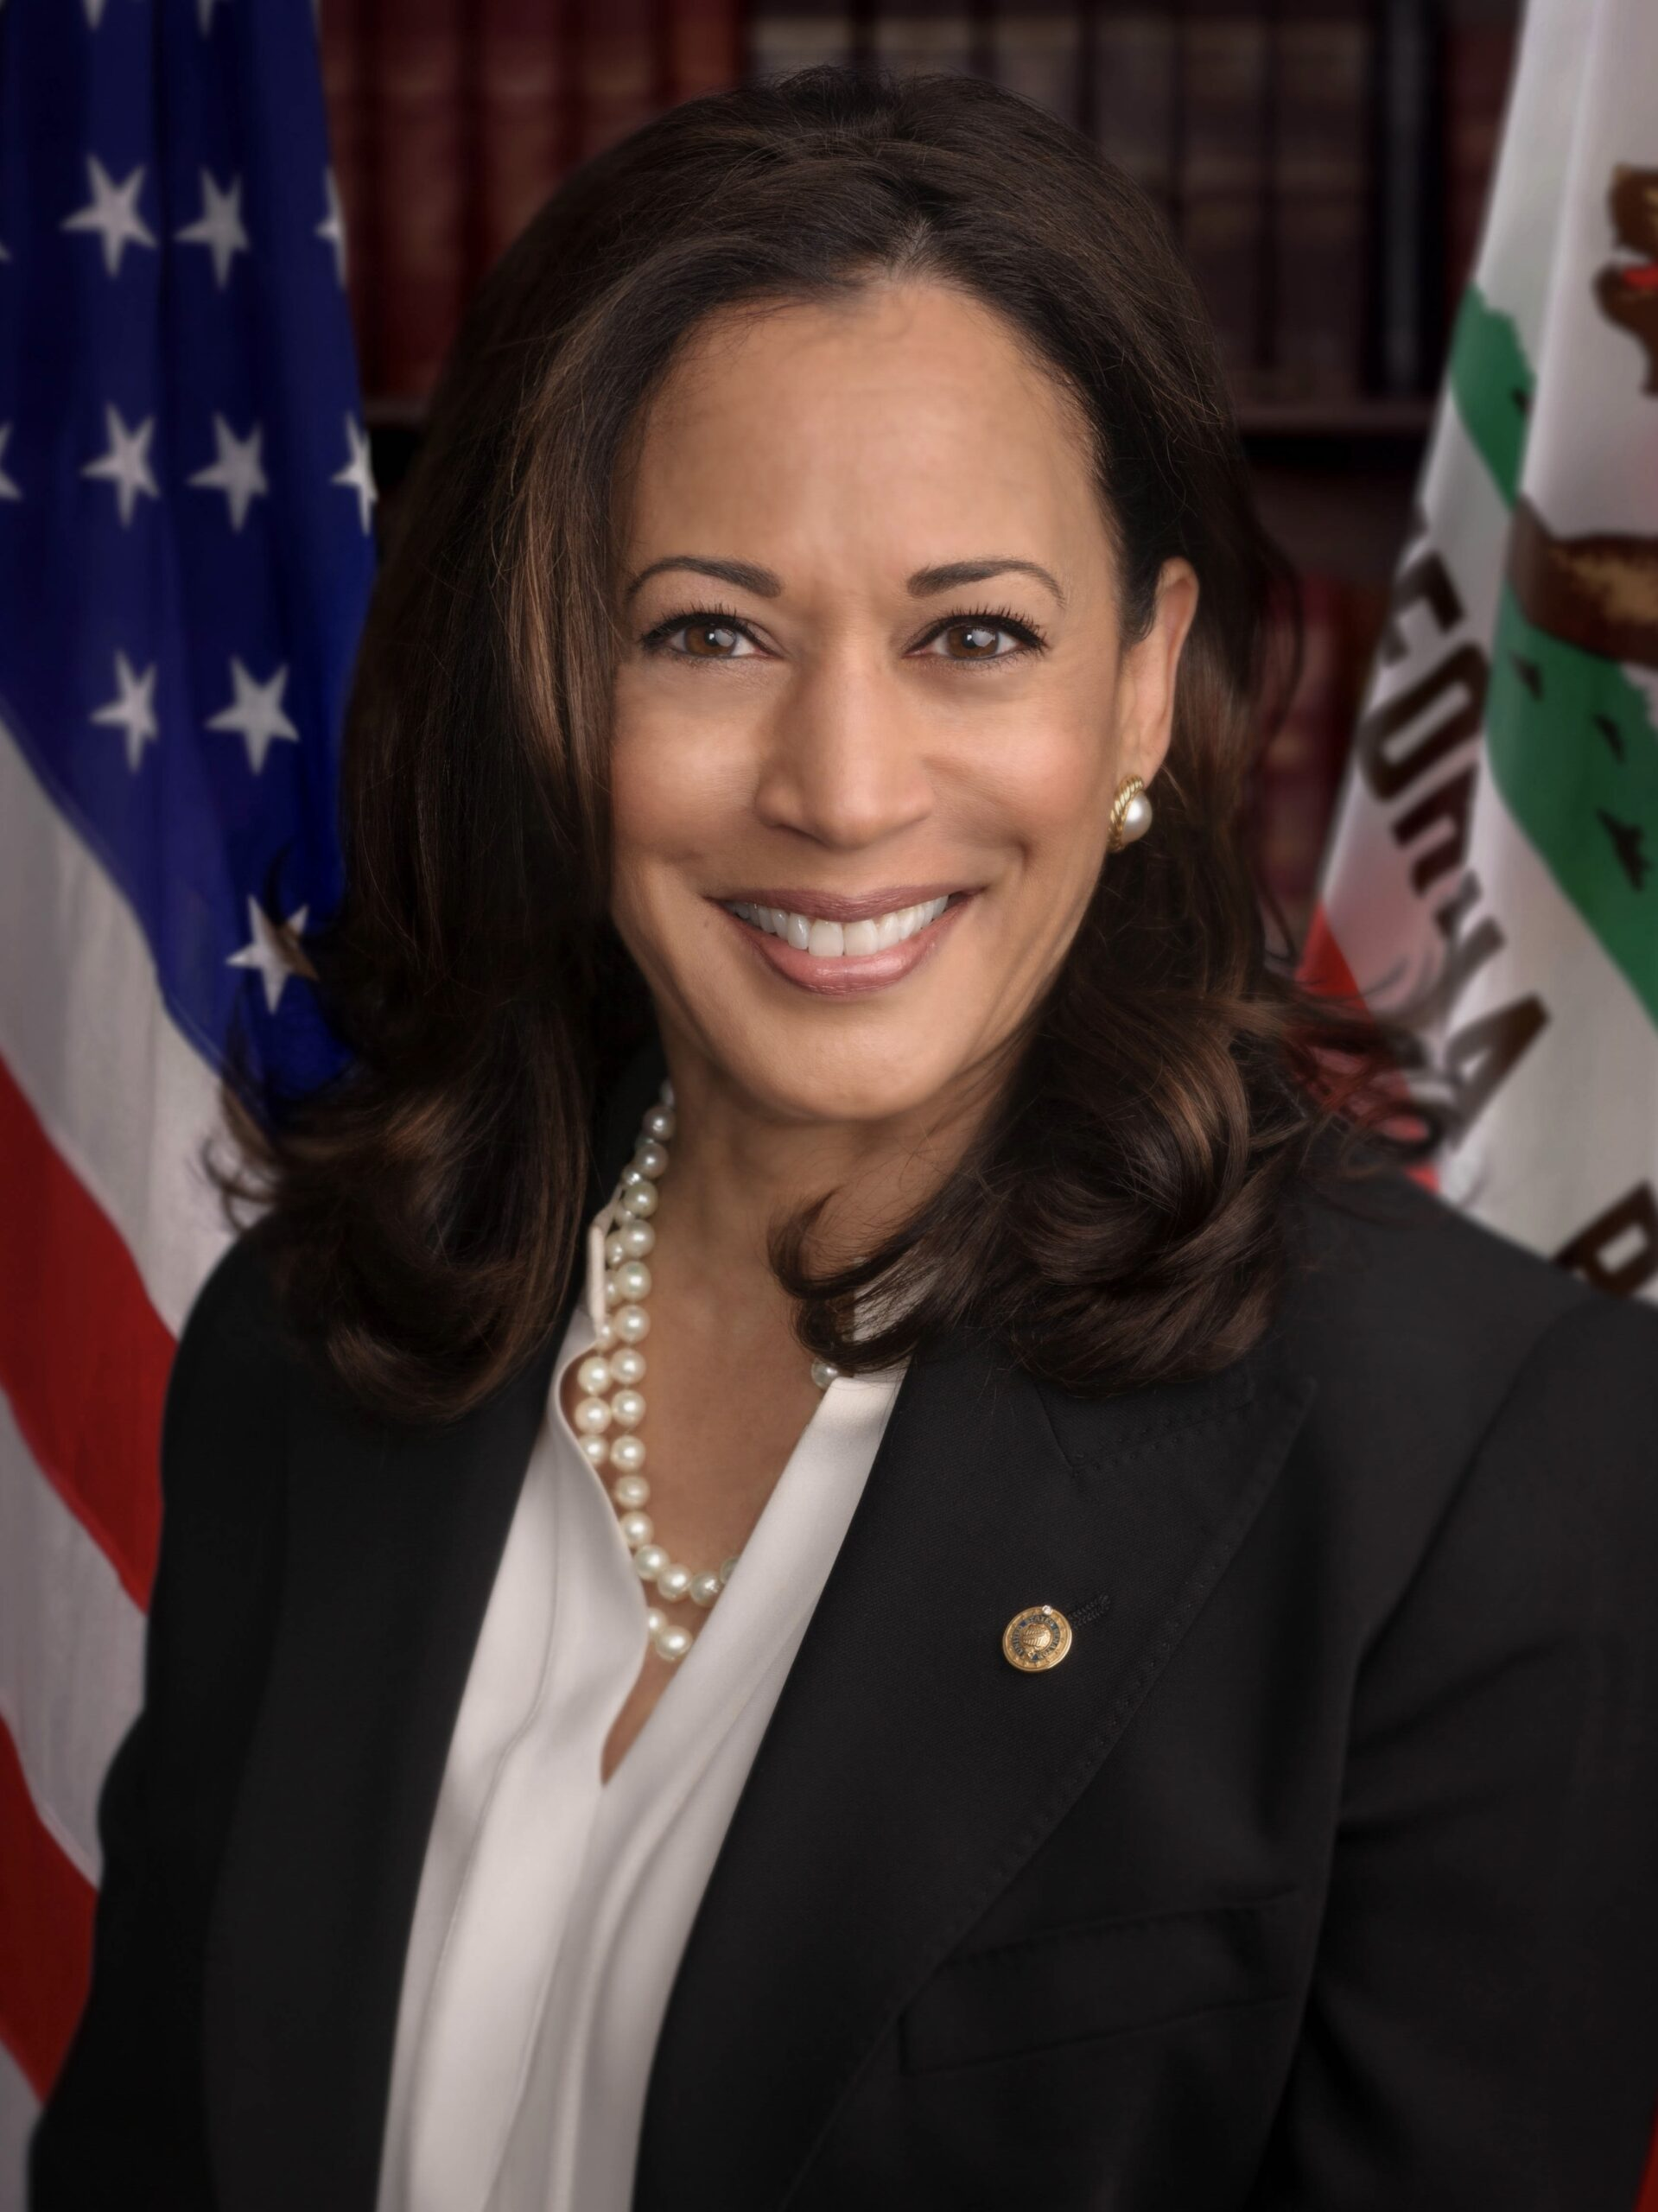 Senator_Harris_official_senate_portrait